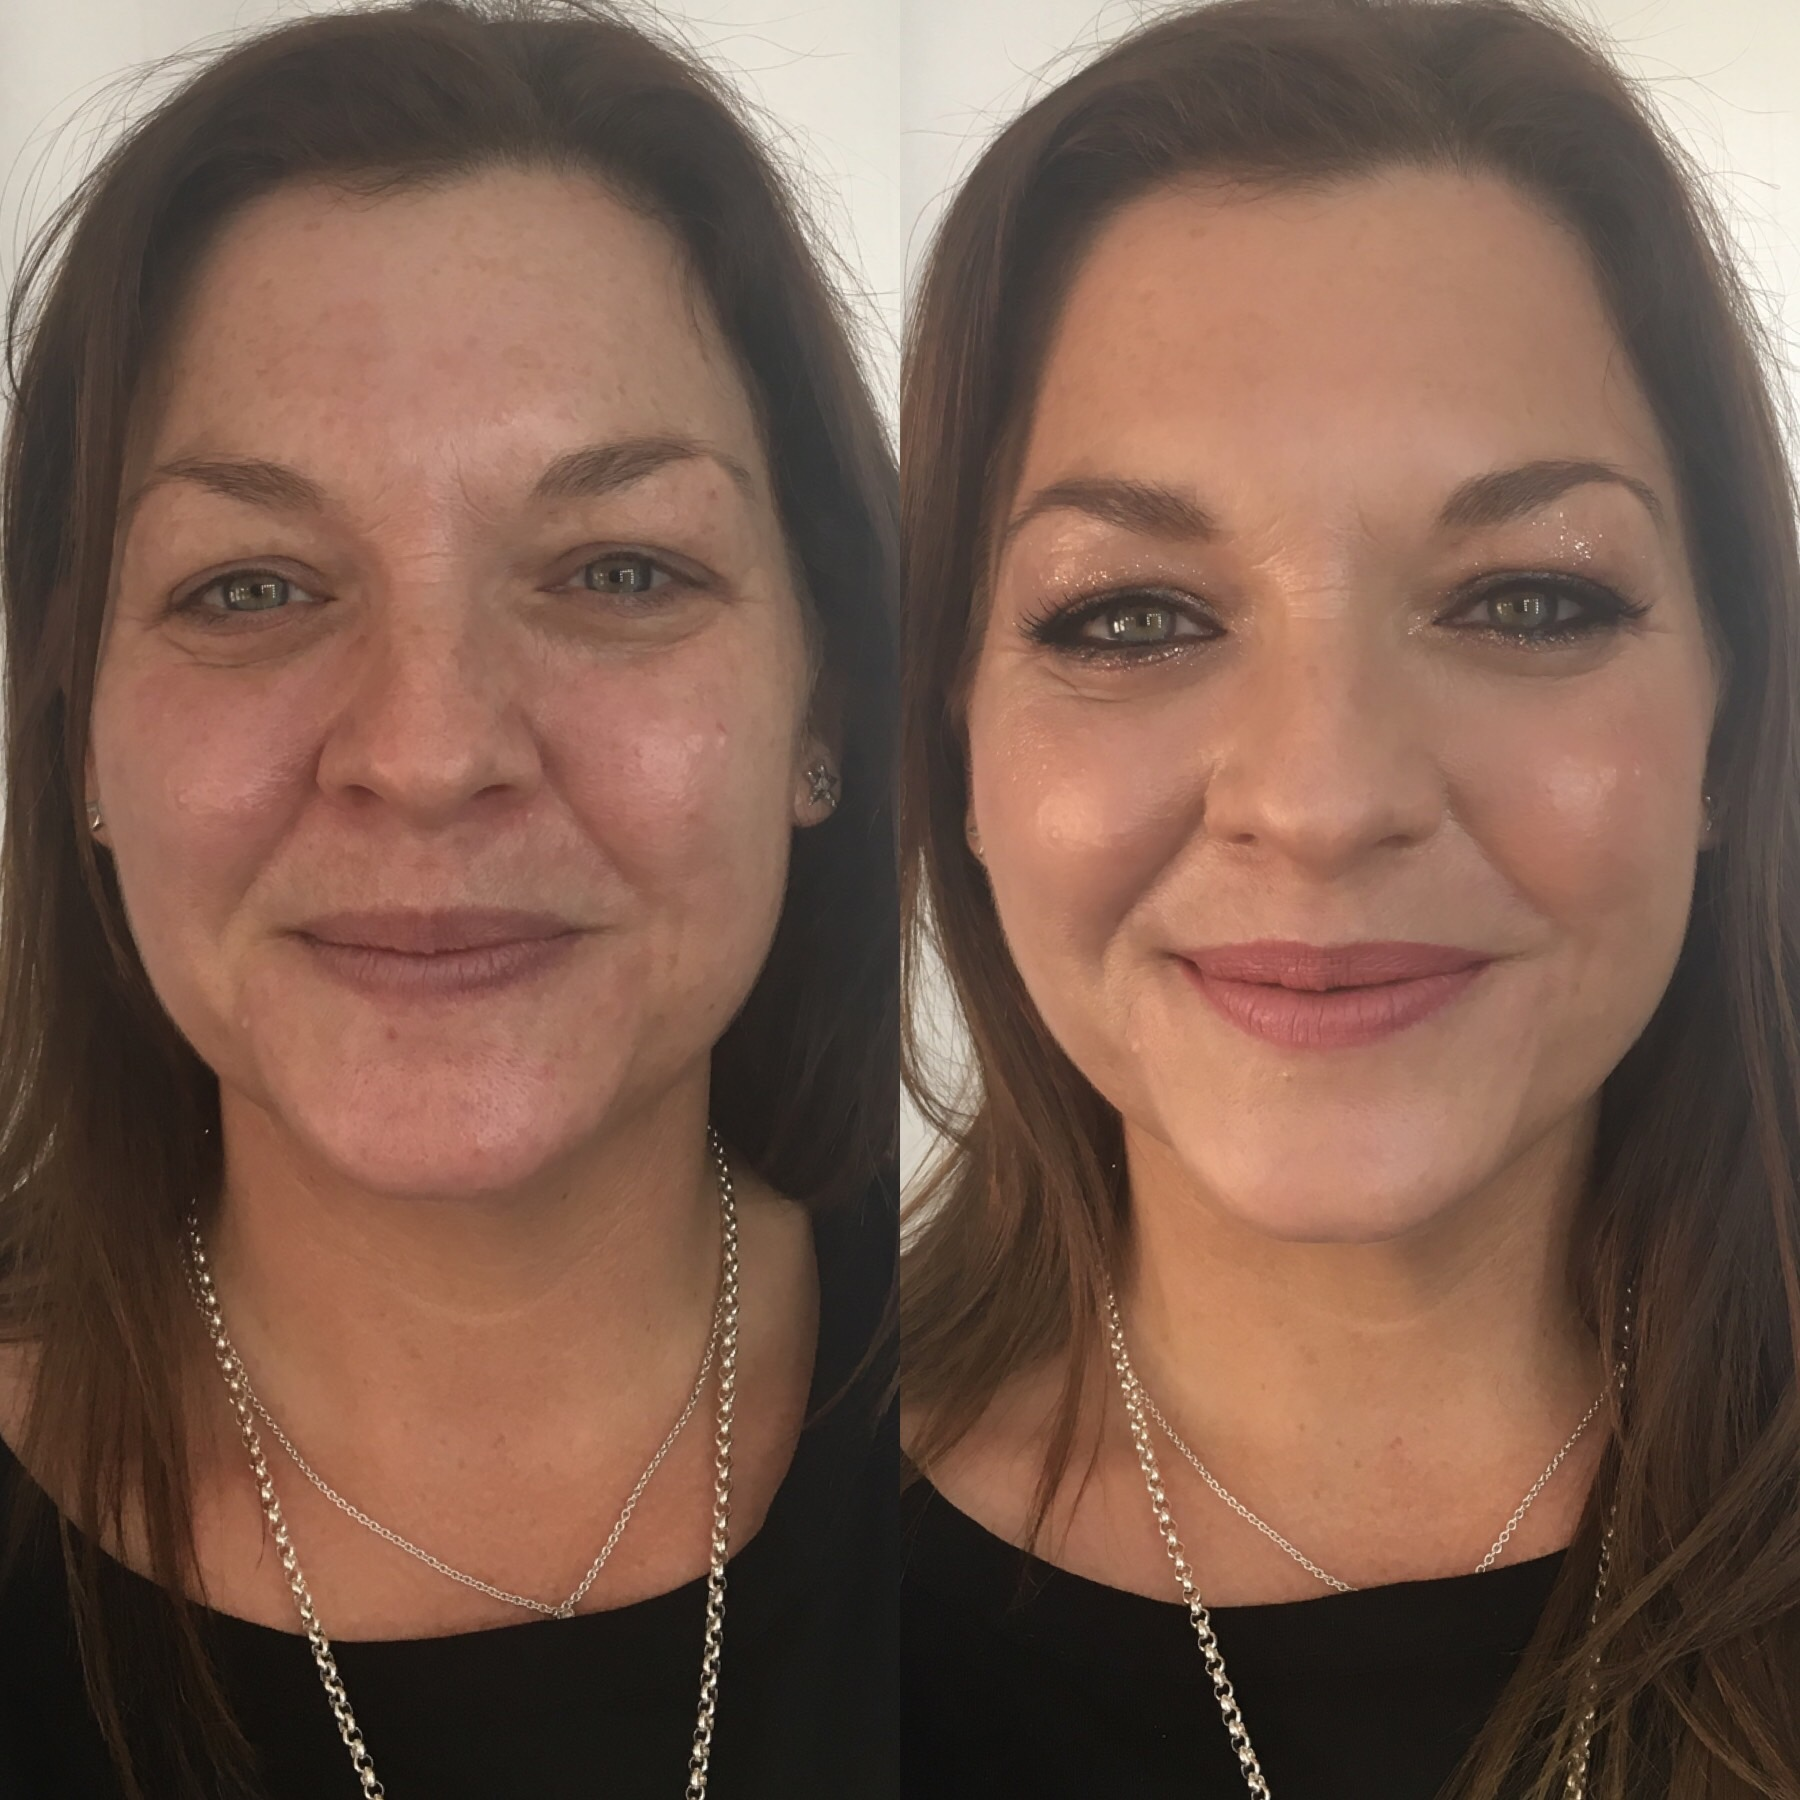 Abbie visited me for a makeup lesson. She loves makeup and leads a very busy life, but wanted to be shown what products to use to make her look more polished for everyday. I also showed her how to apply some false lashes for an evening look. She loved it!